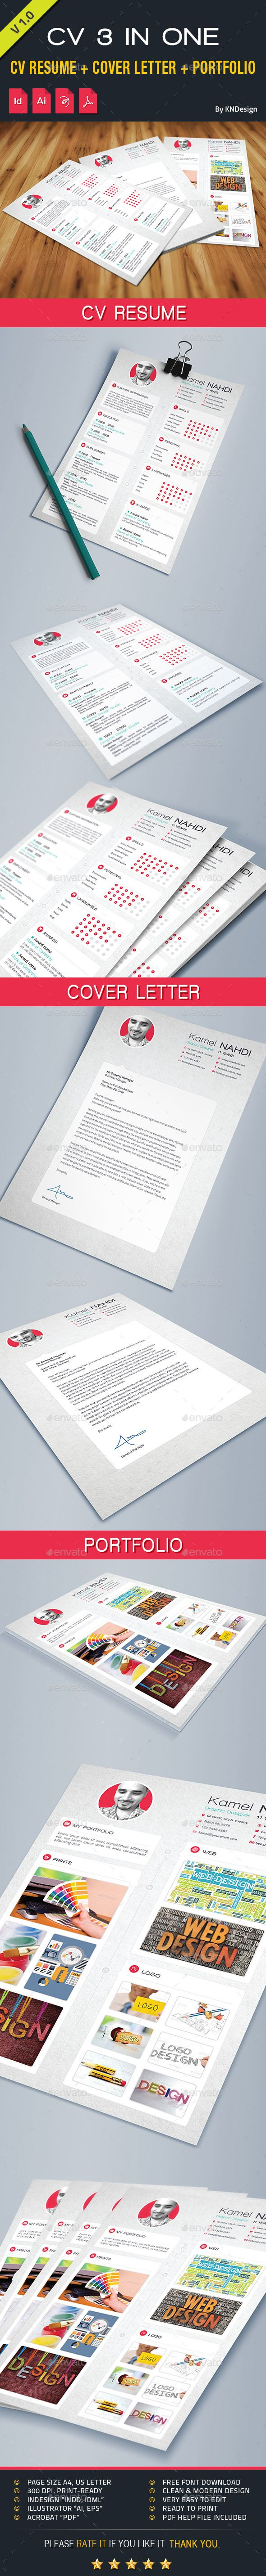 Resume Cv 3 In One By Kameln Resume Cv Cover Letter Portfolio Show Your  Resume The Right Way. Clean & Modern Design And Very Easy To Use And  Customize. Fi